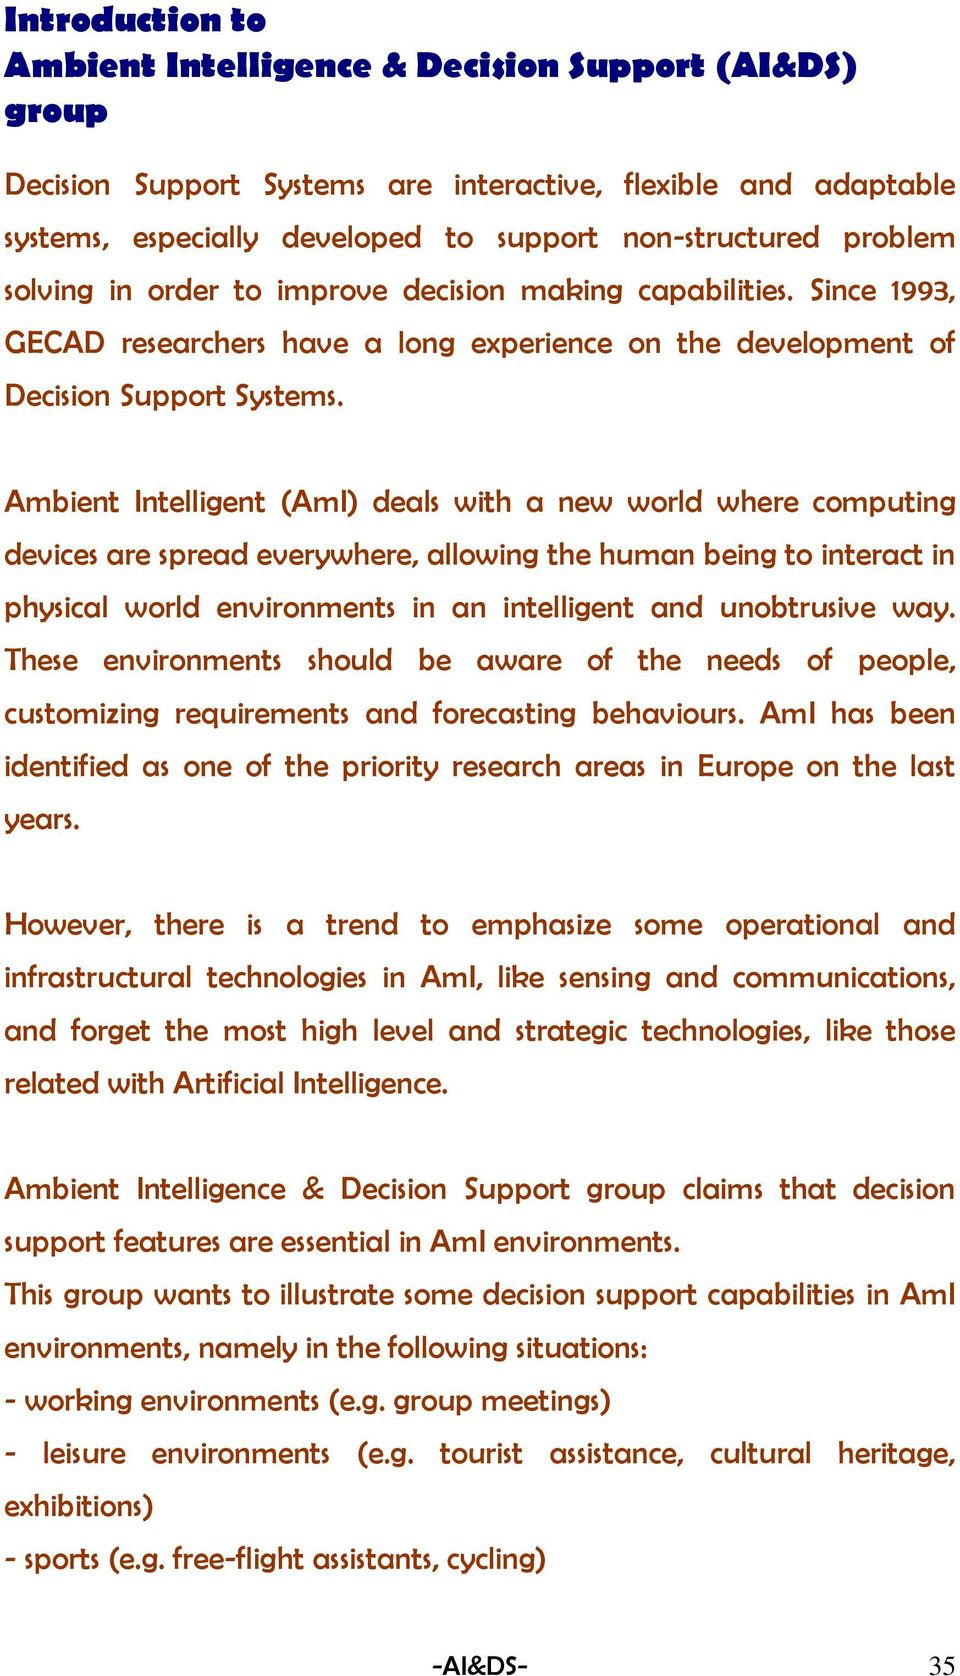 Ambient Intelligent (AmI) deals with a new world where computing devices are spread everywhere, allowing the human being to interact in physical world environments in an intelligent and unobtrusive